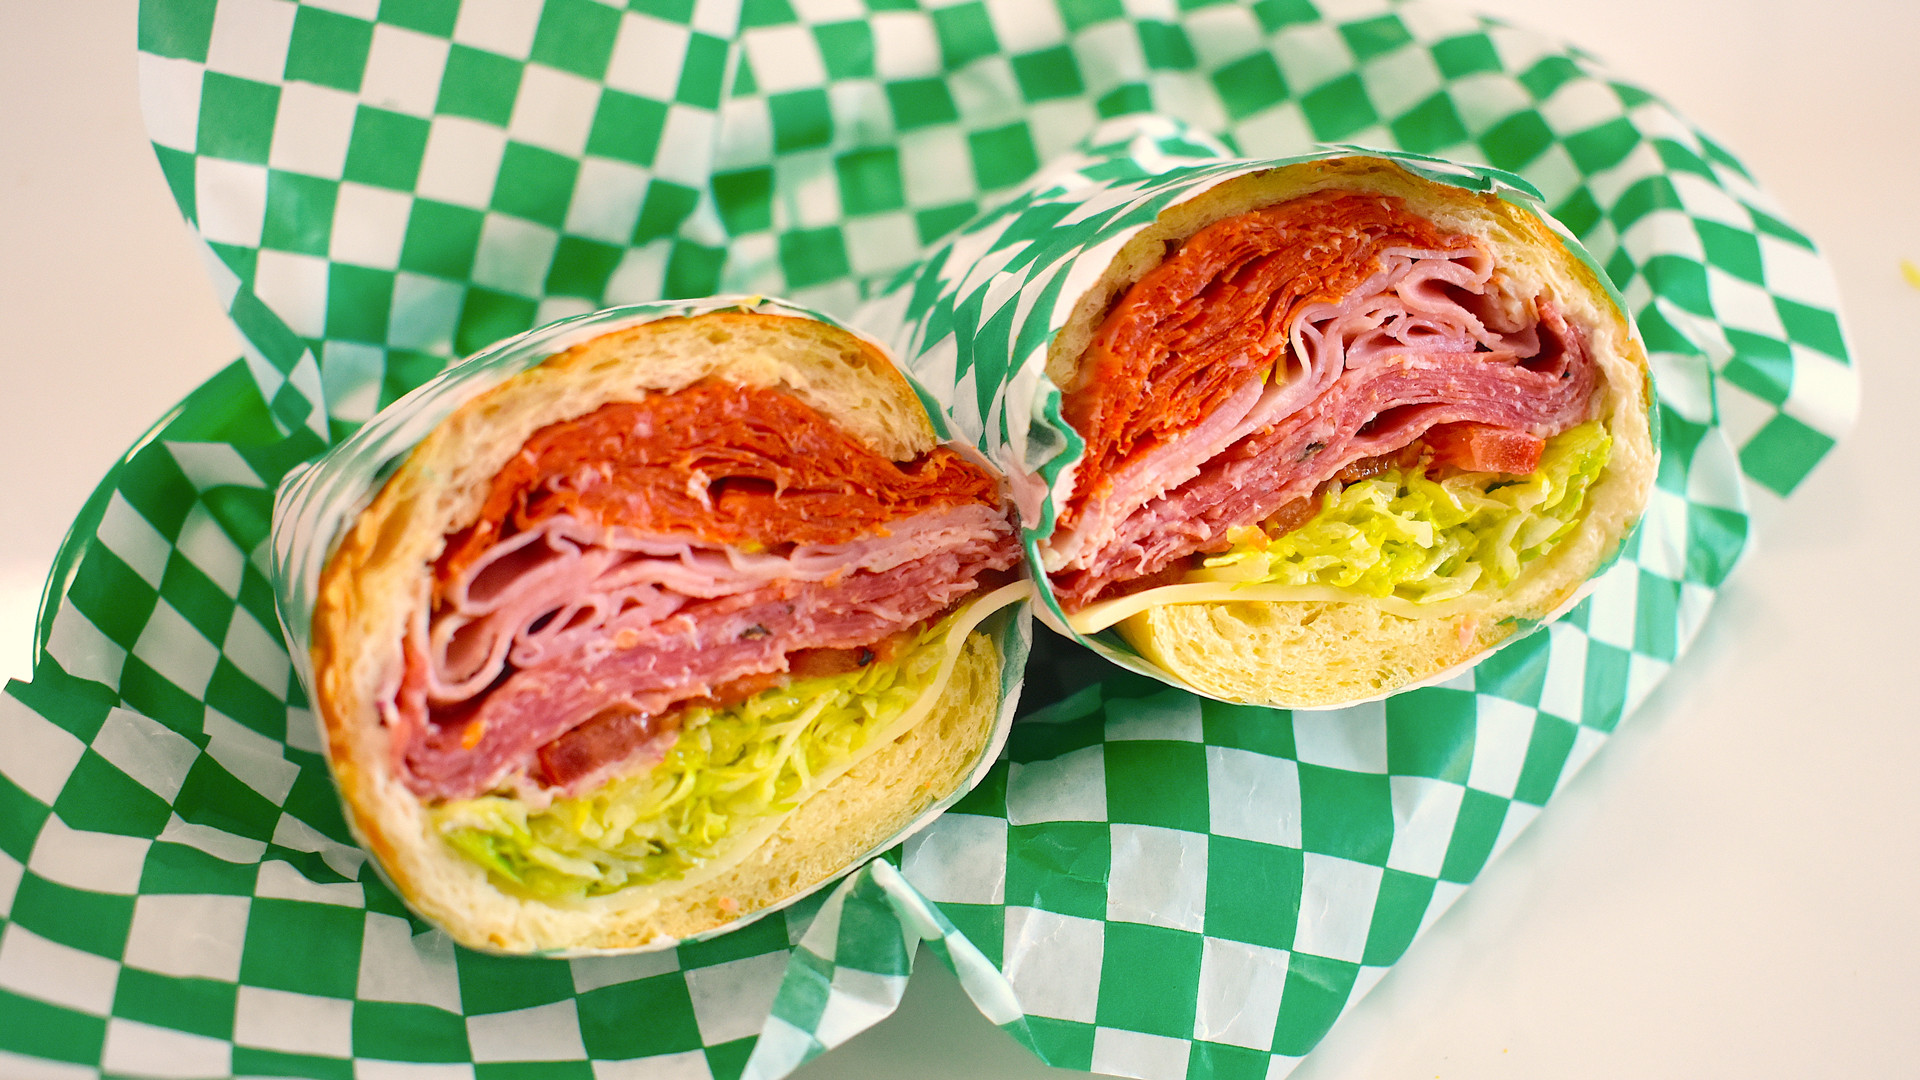 The best sandwiches in Toronto | Classic combo at Lambo's Deli & Grocery